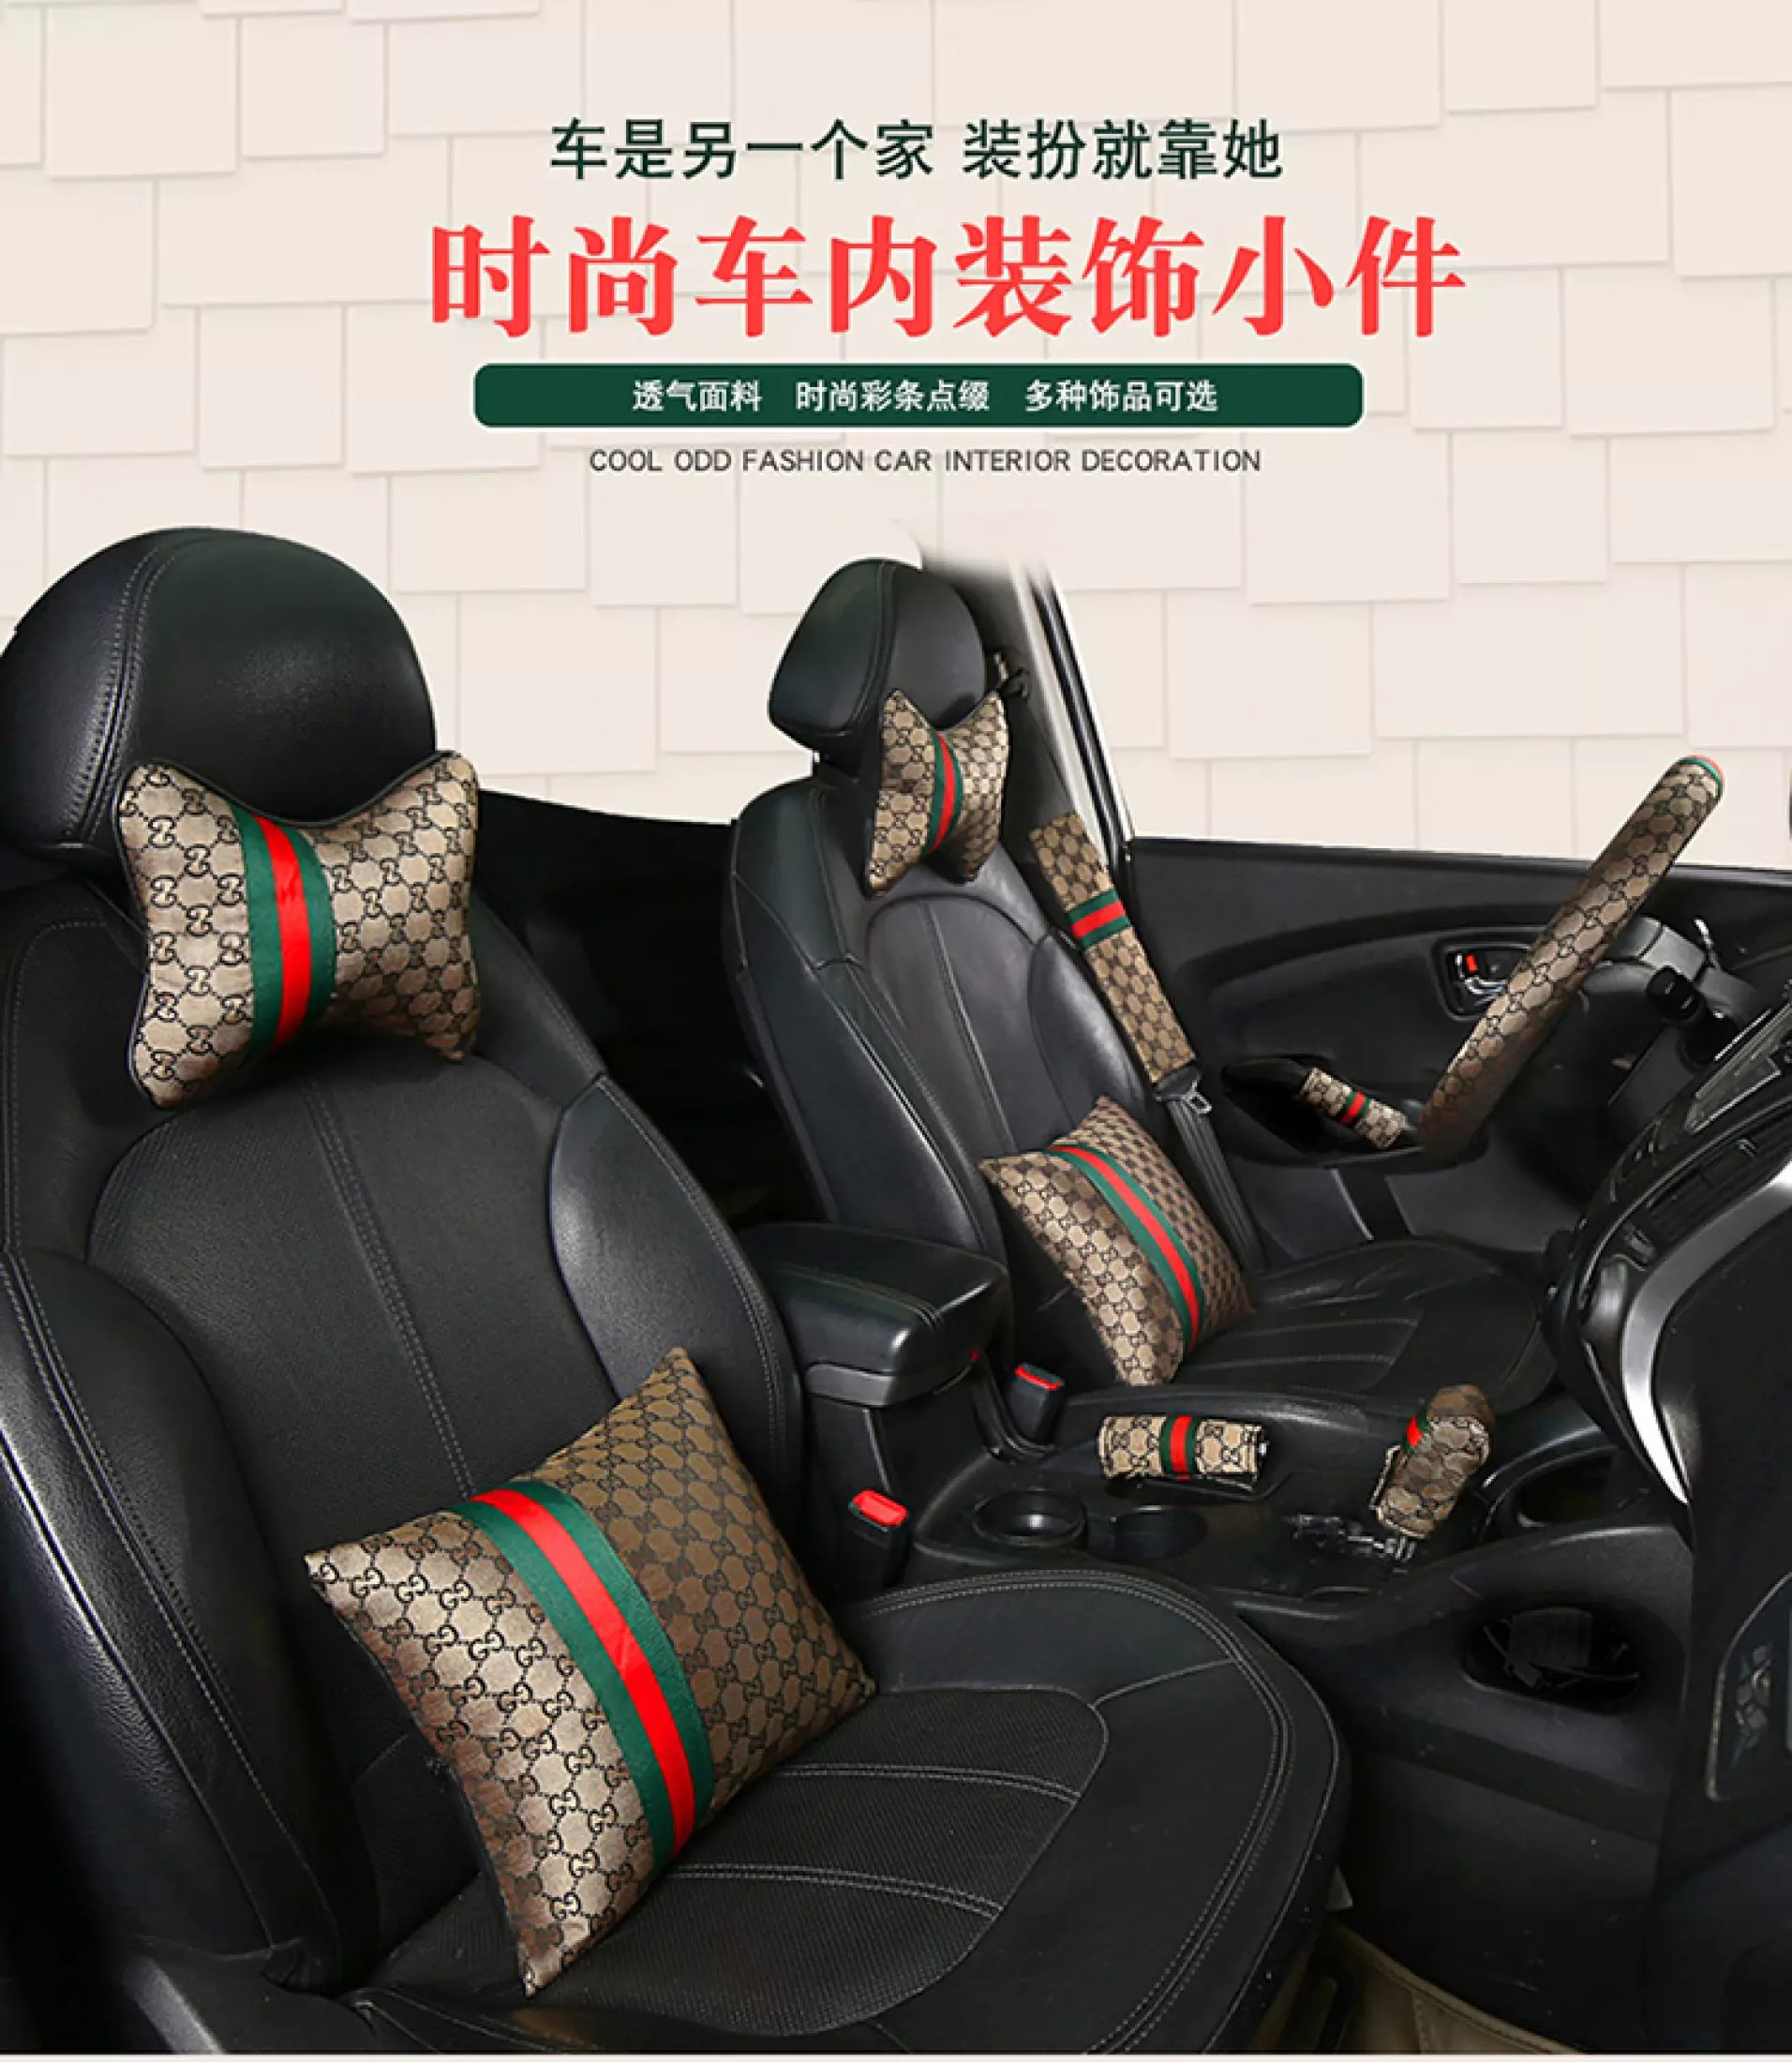 gucci cool steering wheel cover gucci personality creative car steering wheel cover trendy brand men s special suit supplies interior decoration